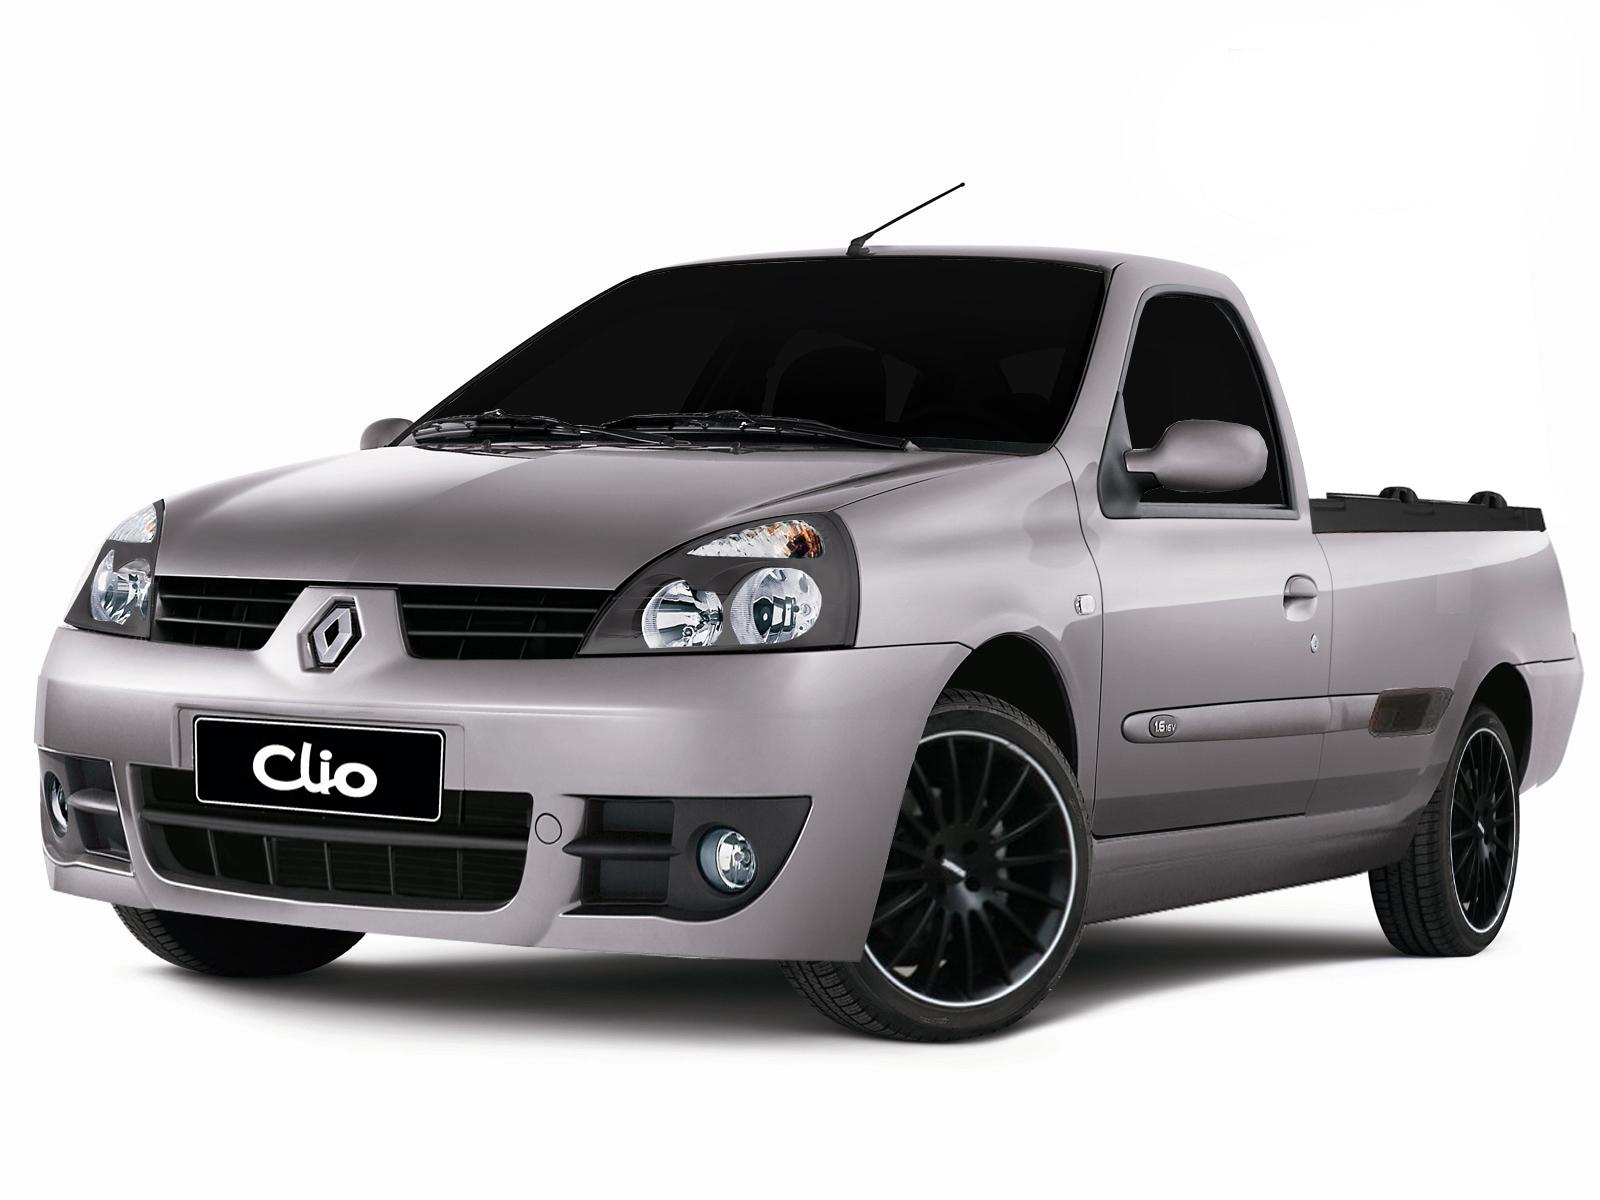 gidson multi cars clio pickup tuning. Black Bedroom Furniture Sets. Home Design Ideas